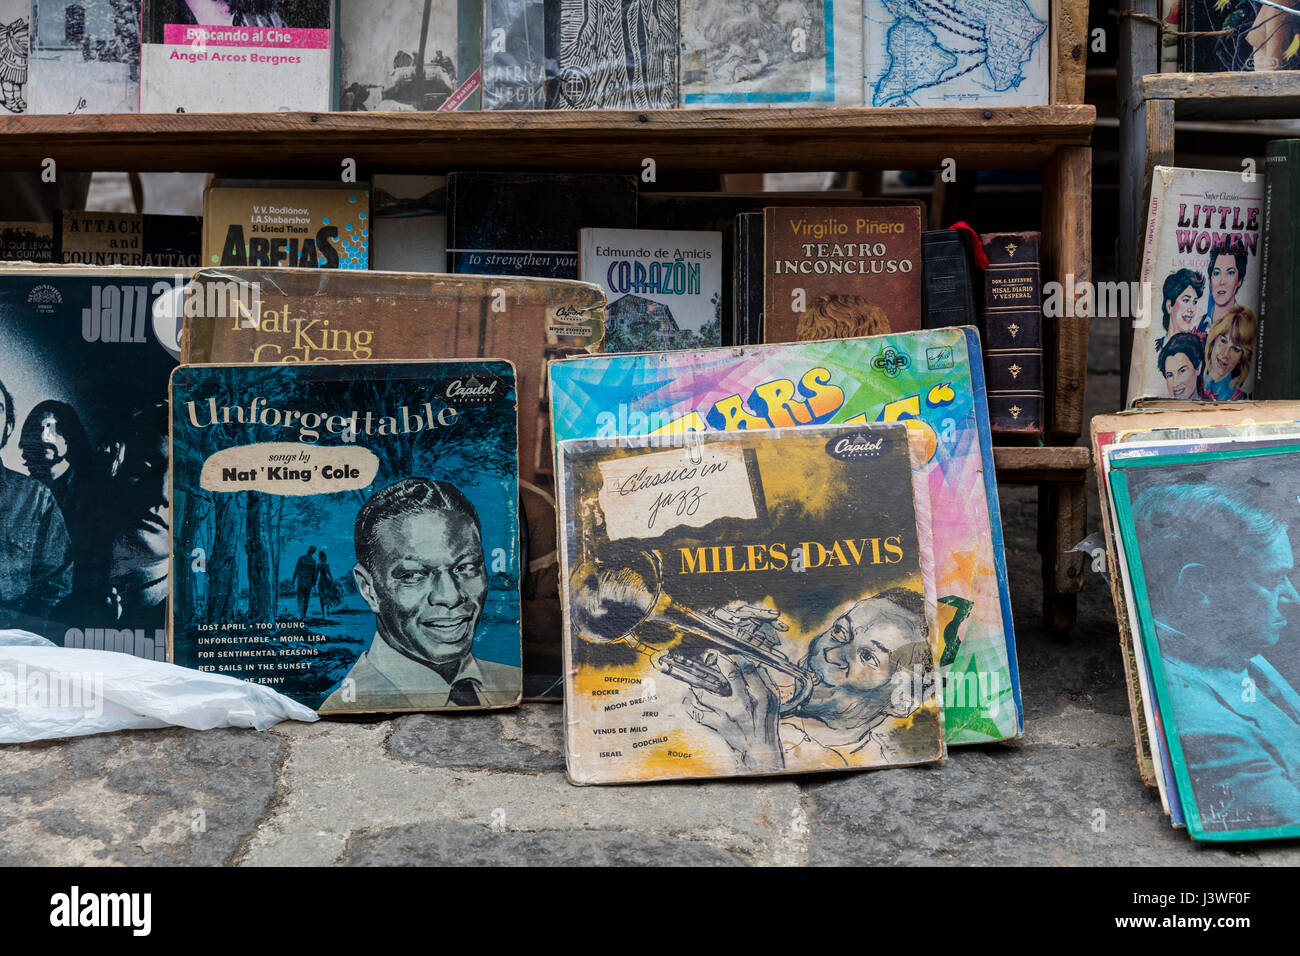 Open air market place for secondhand books, posters and vinyl records in Plaza de Armas, Havana´s oldest square. - Stock Image